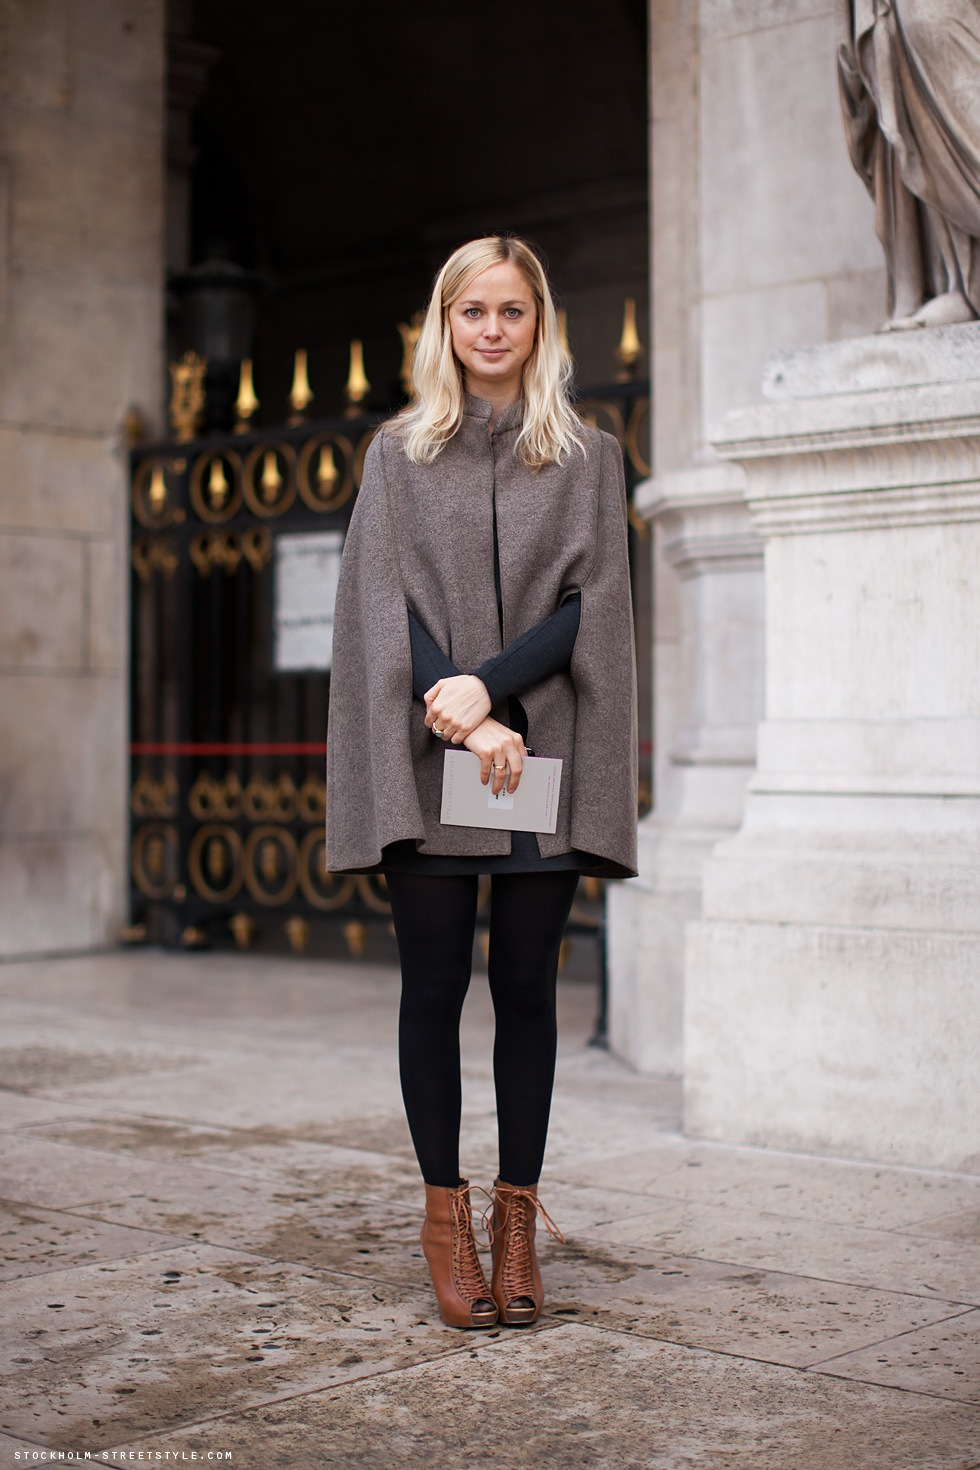 styling black with boots search results wood